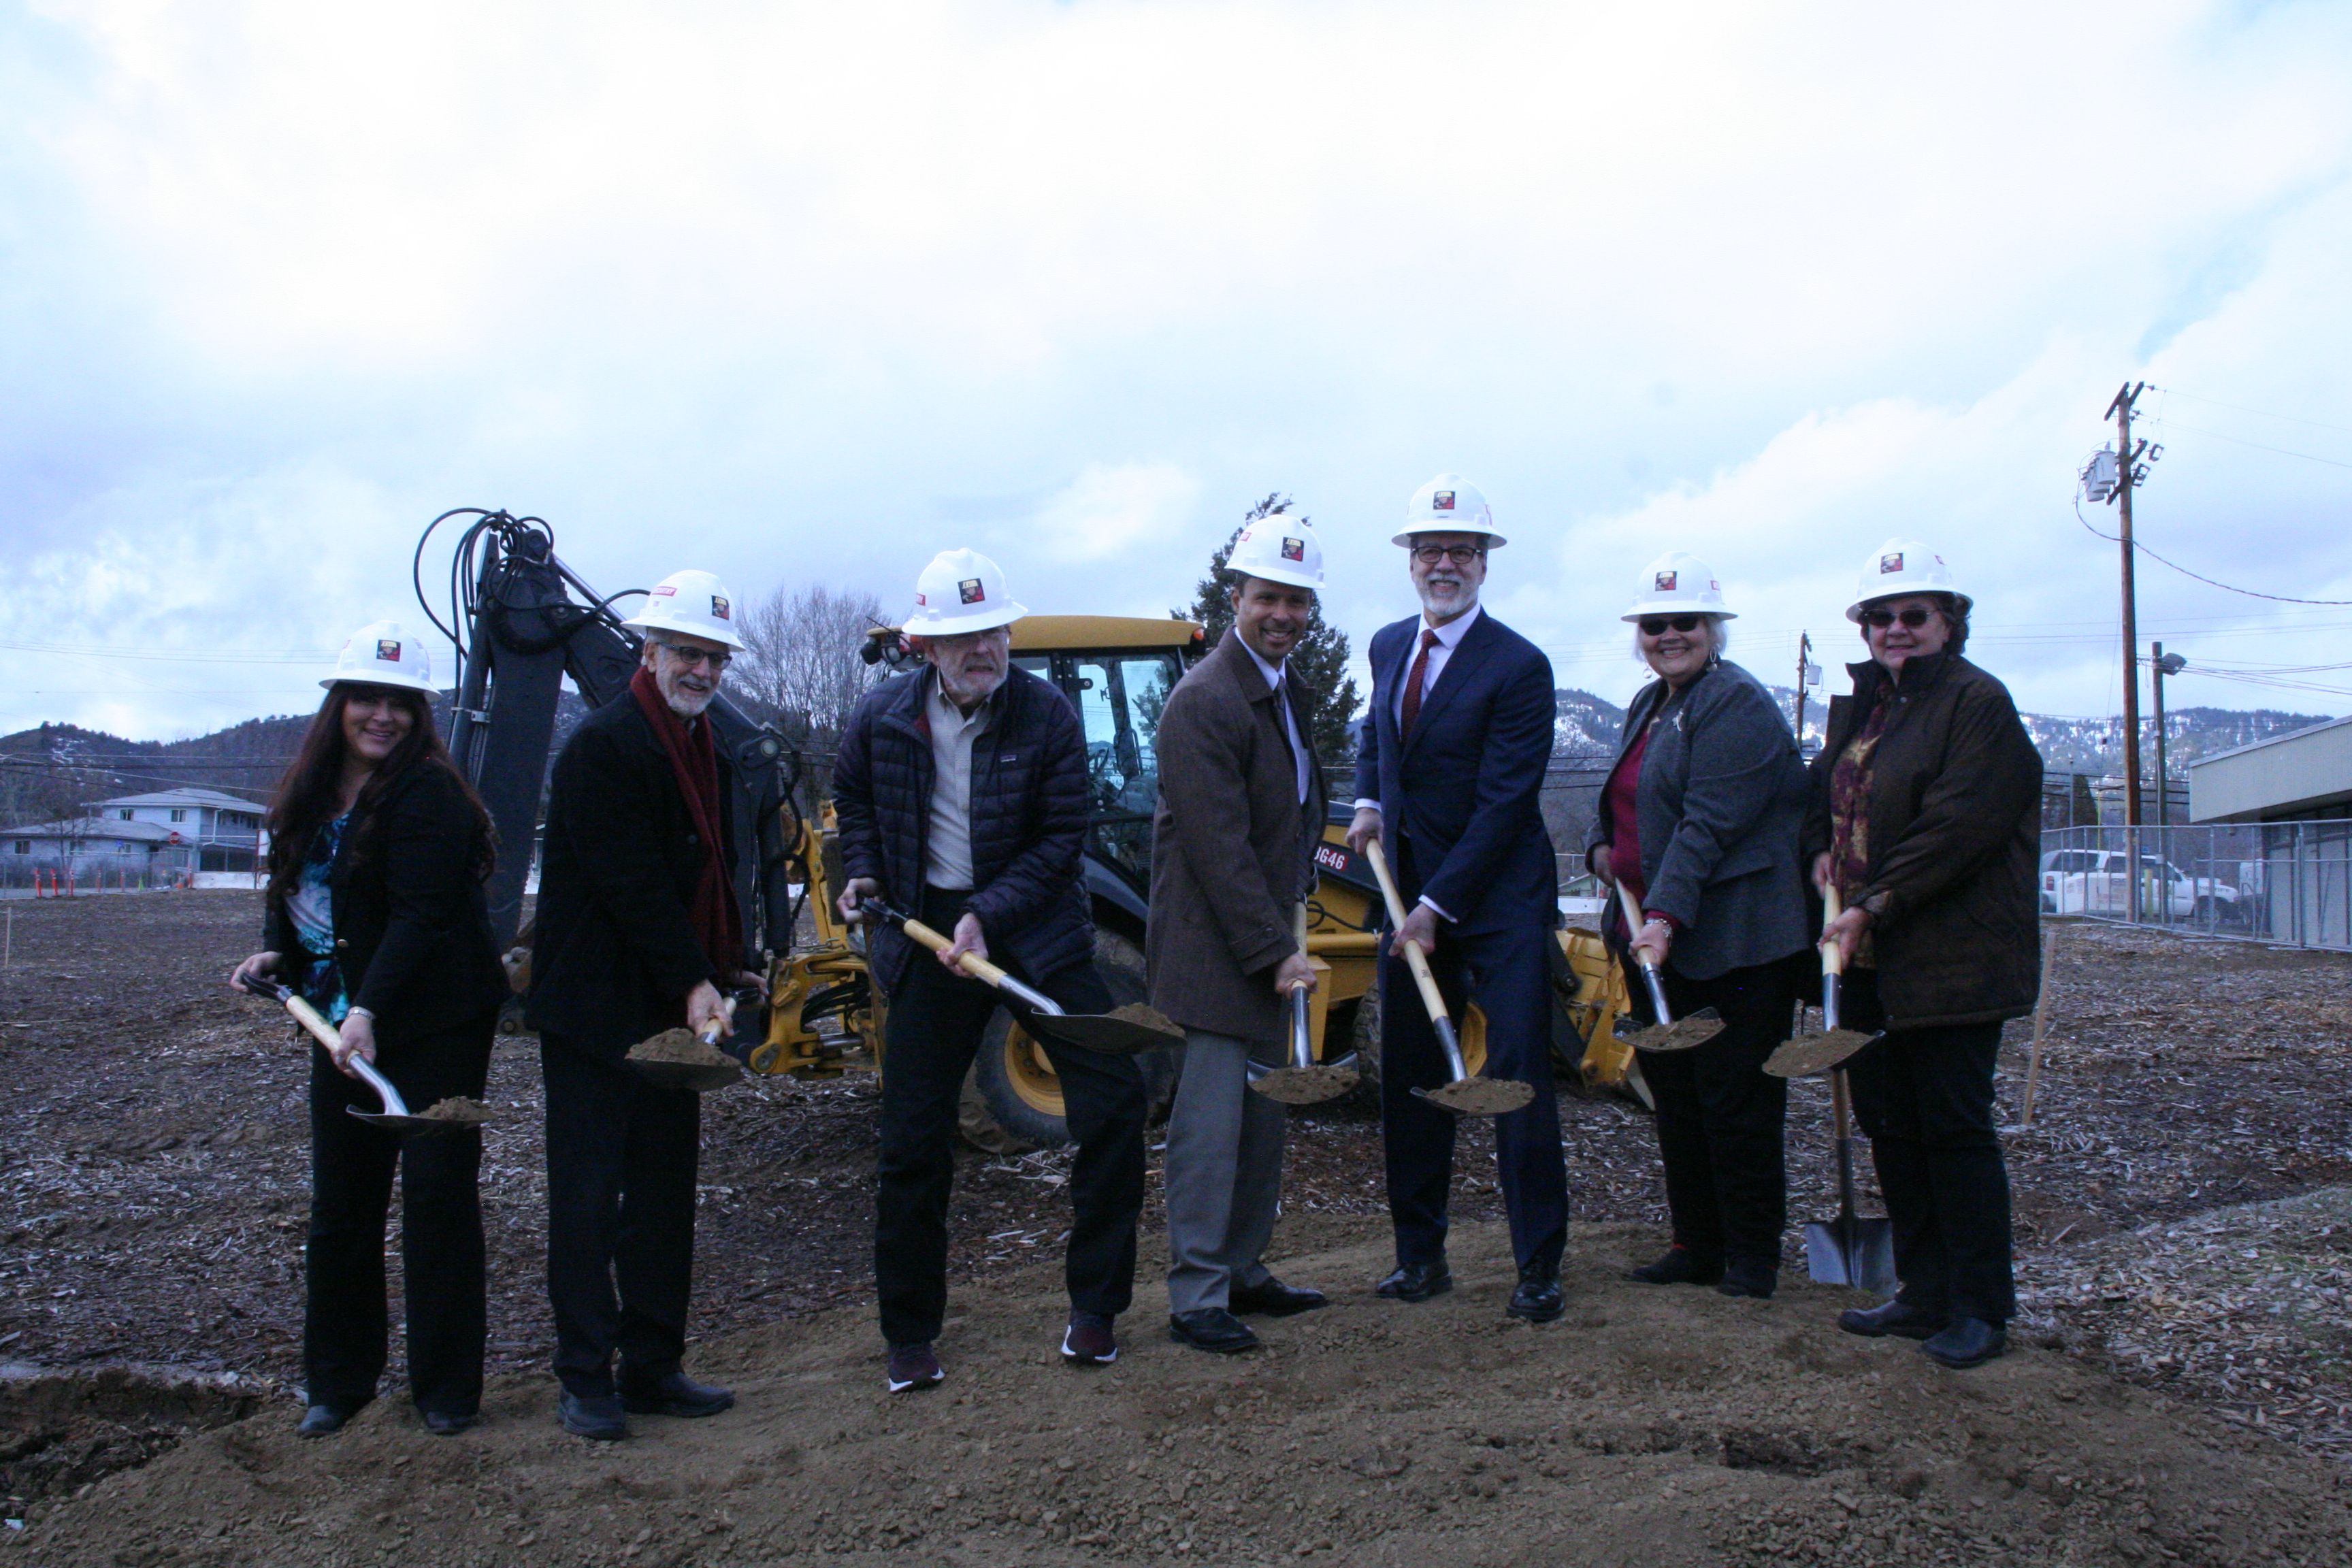 Siskiyou County: Groundbreaking - March 1, 2019